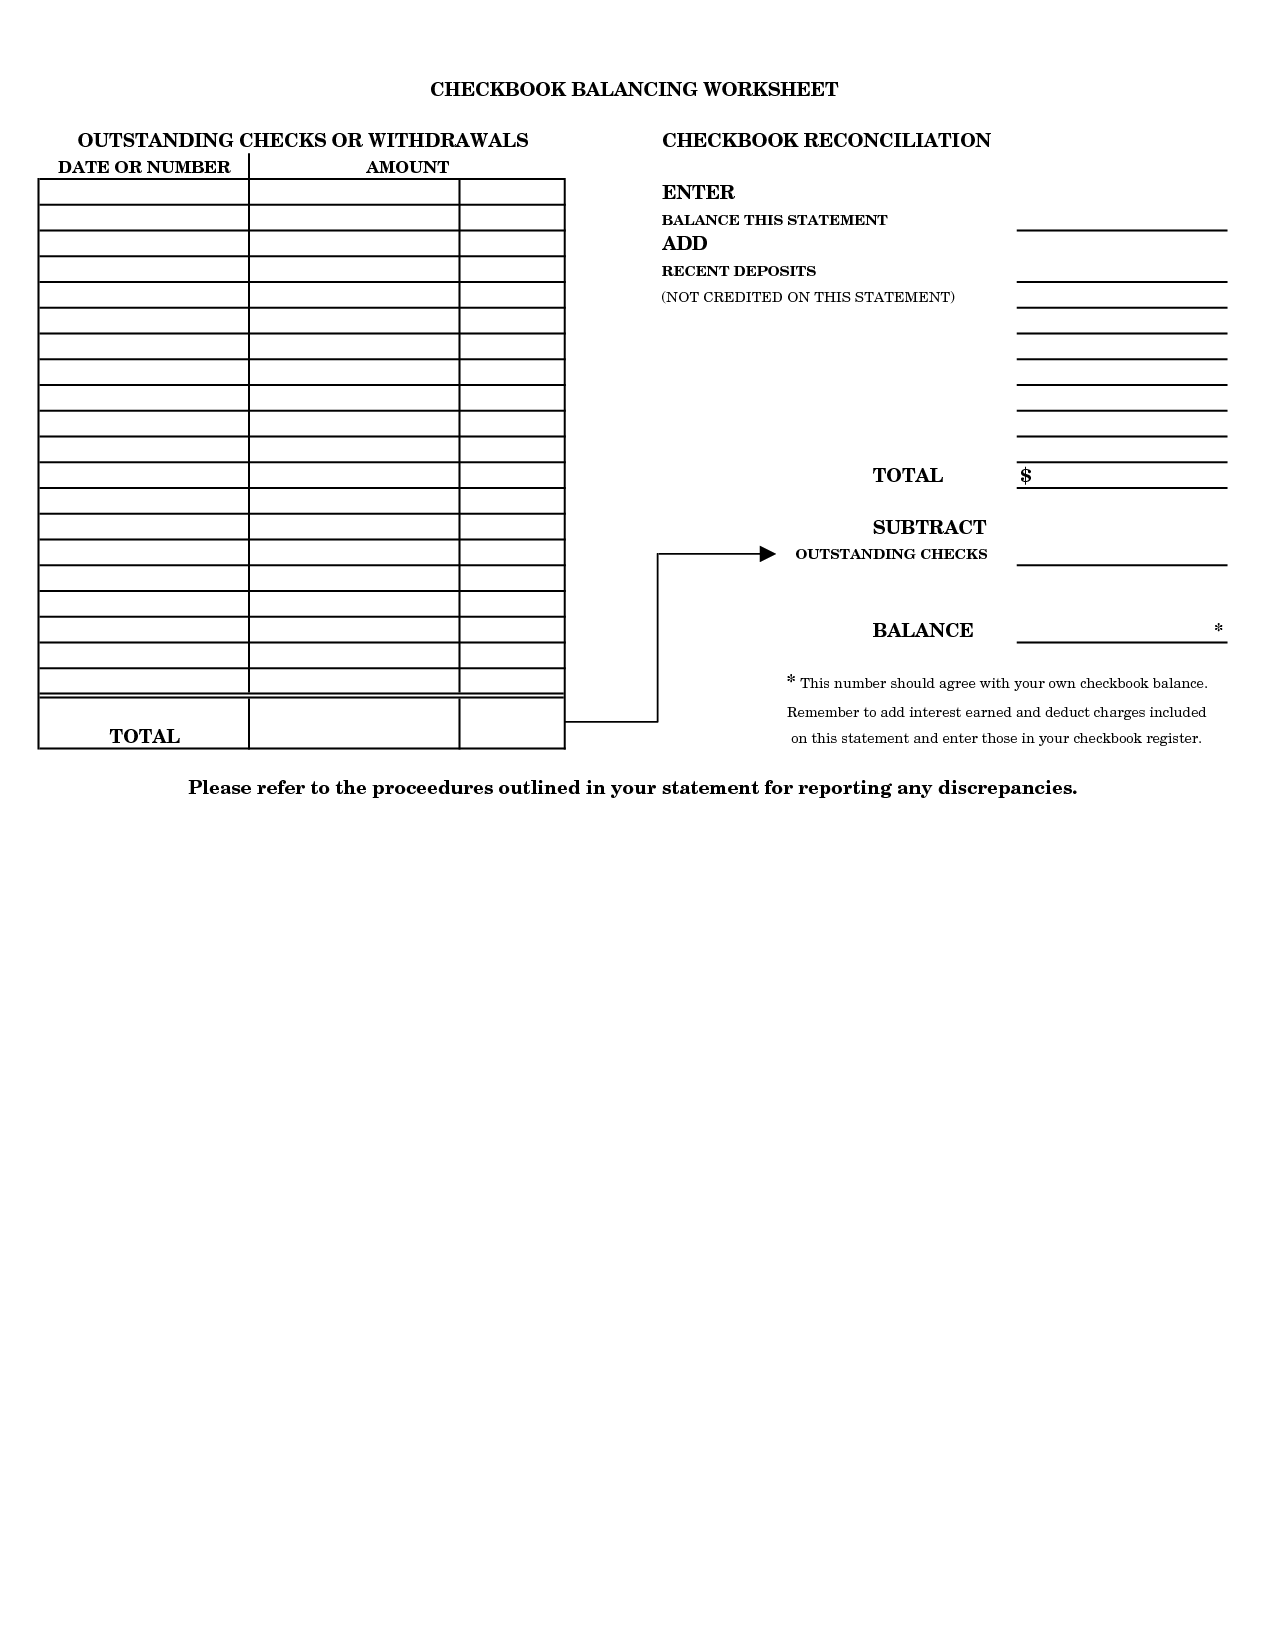 Worksheet Free Printable Balancing Checkbook Worksheets printable checkbook balancing form worksheet outstanding checks or withdrawals date